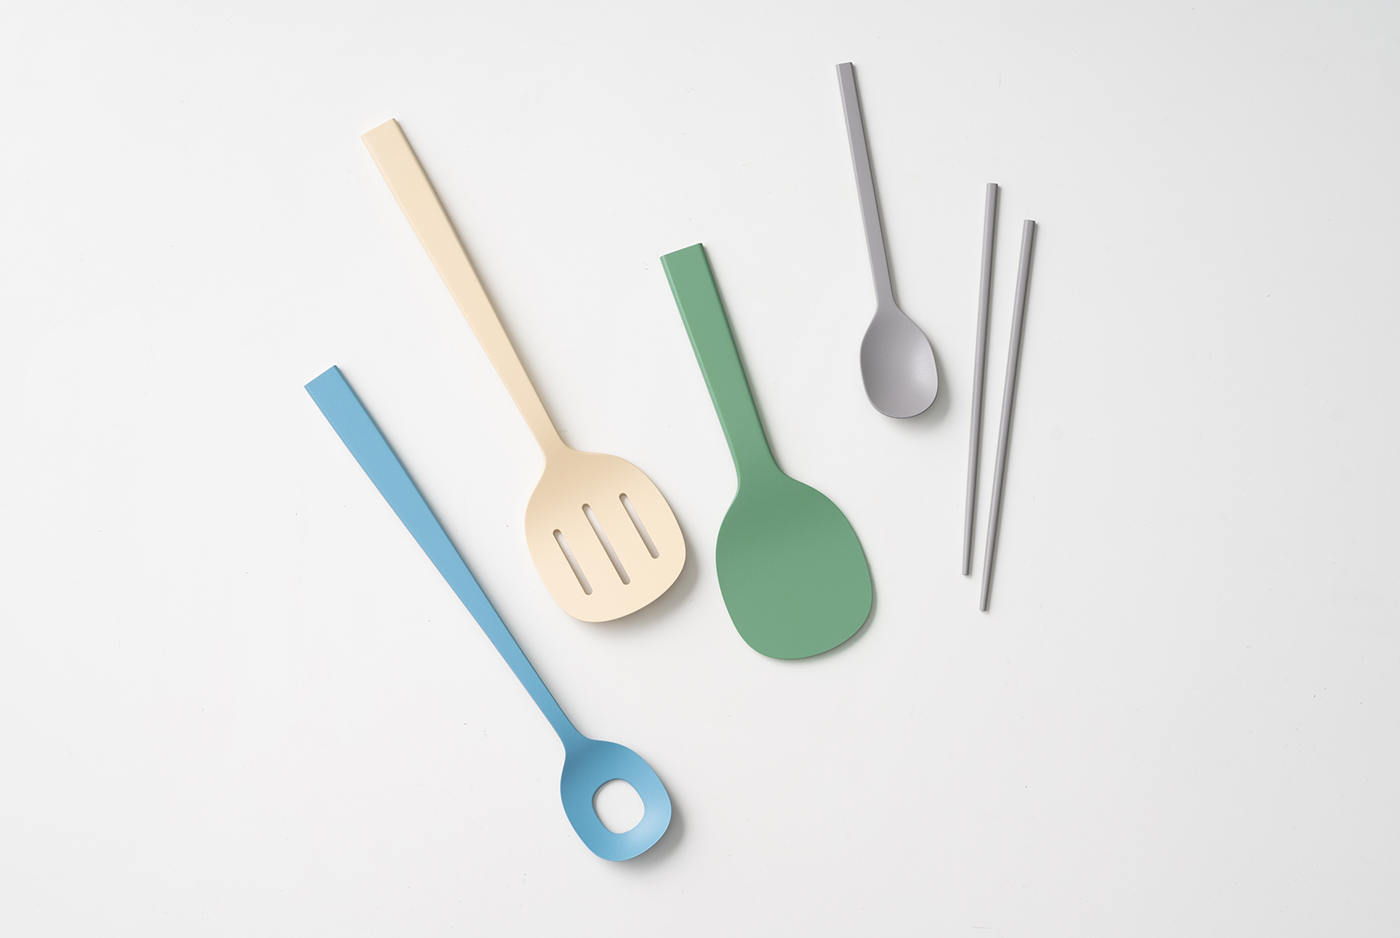 wood wooden spoon natural material tray bkid